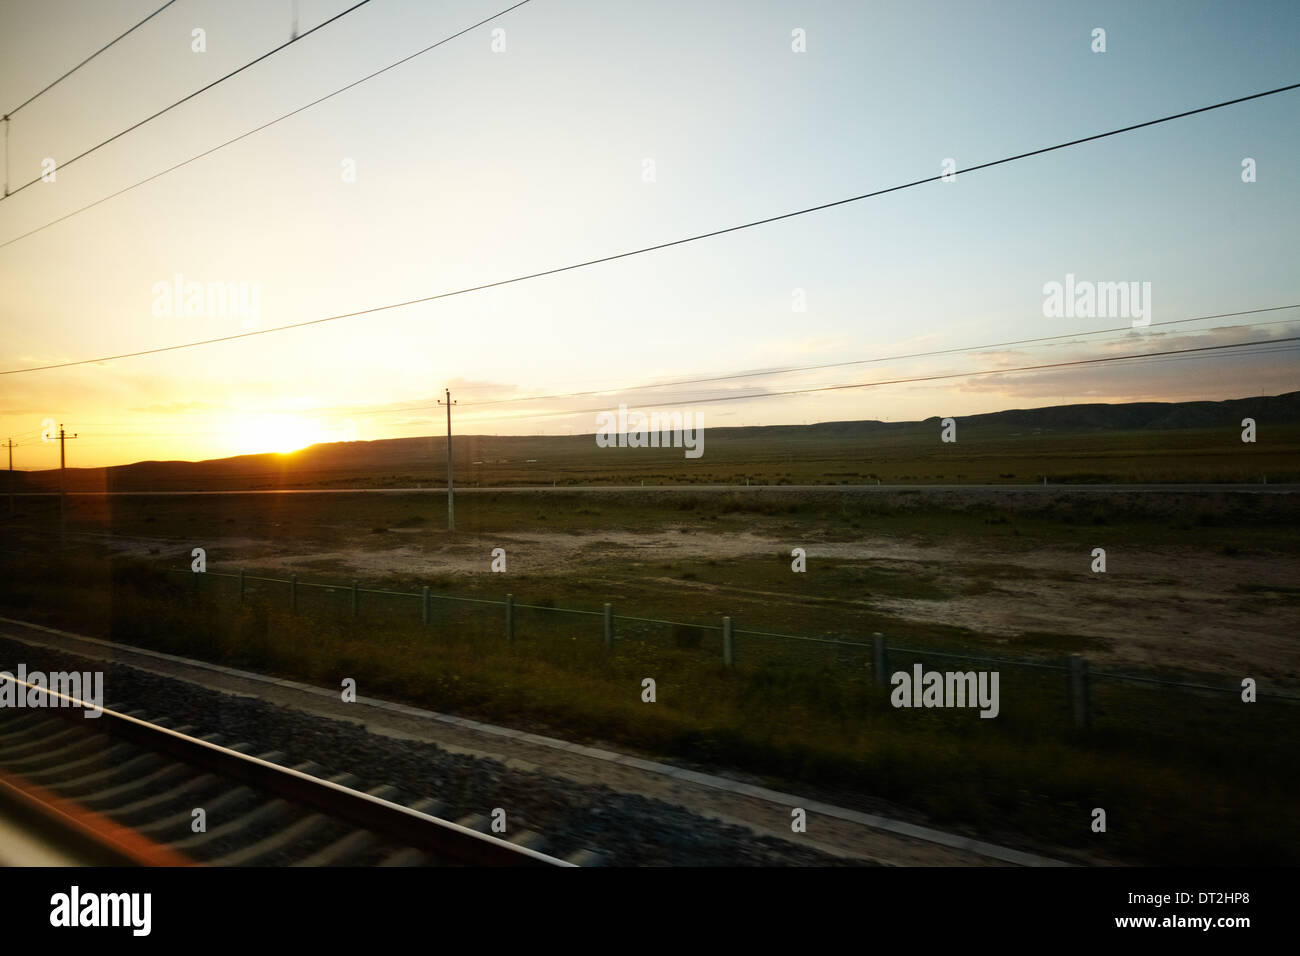 Sunset view of outskirts China on T22 Qinghai Tibet train - Stock Image